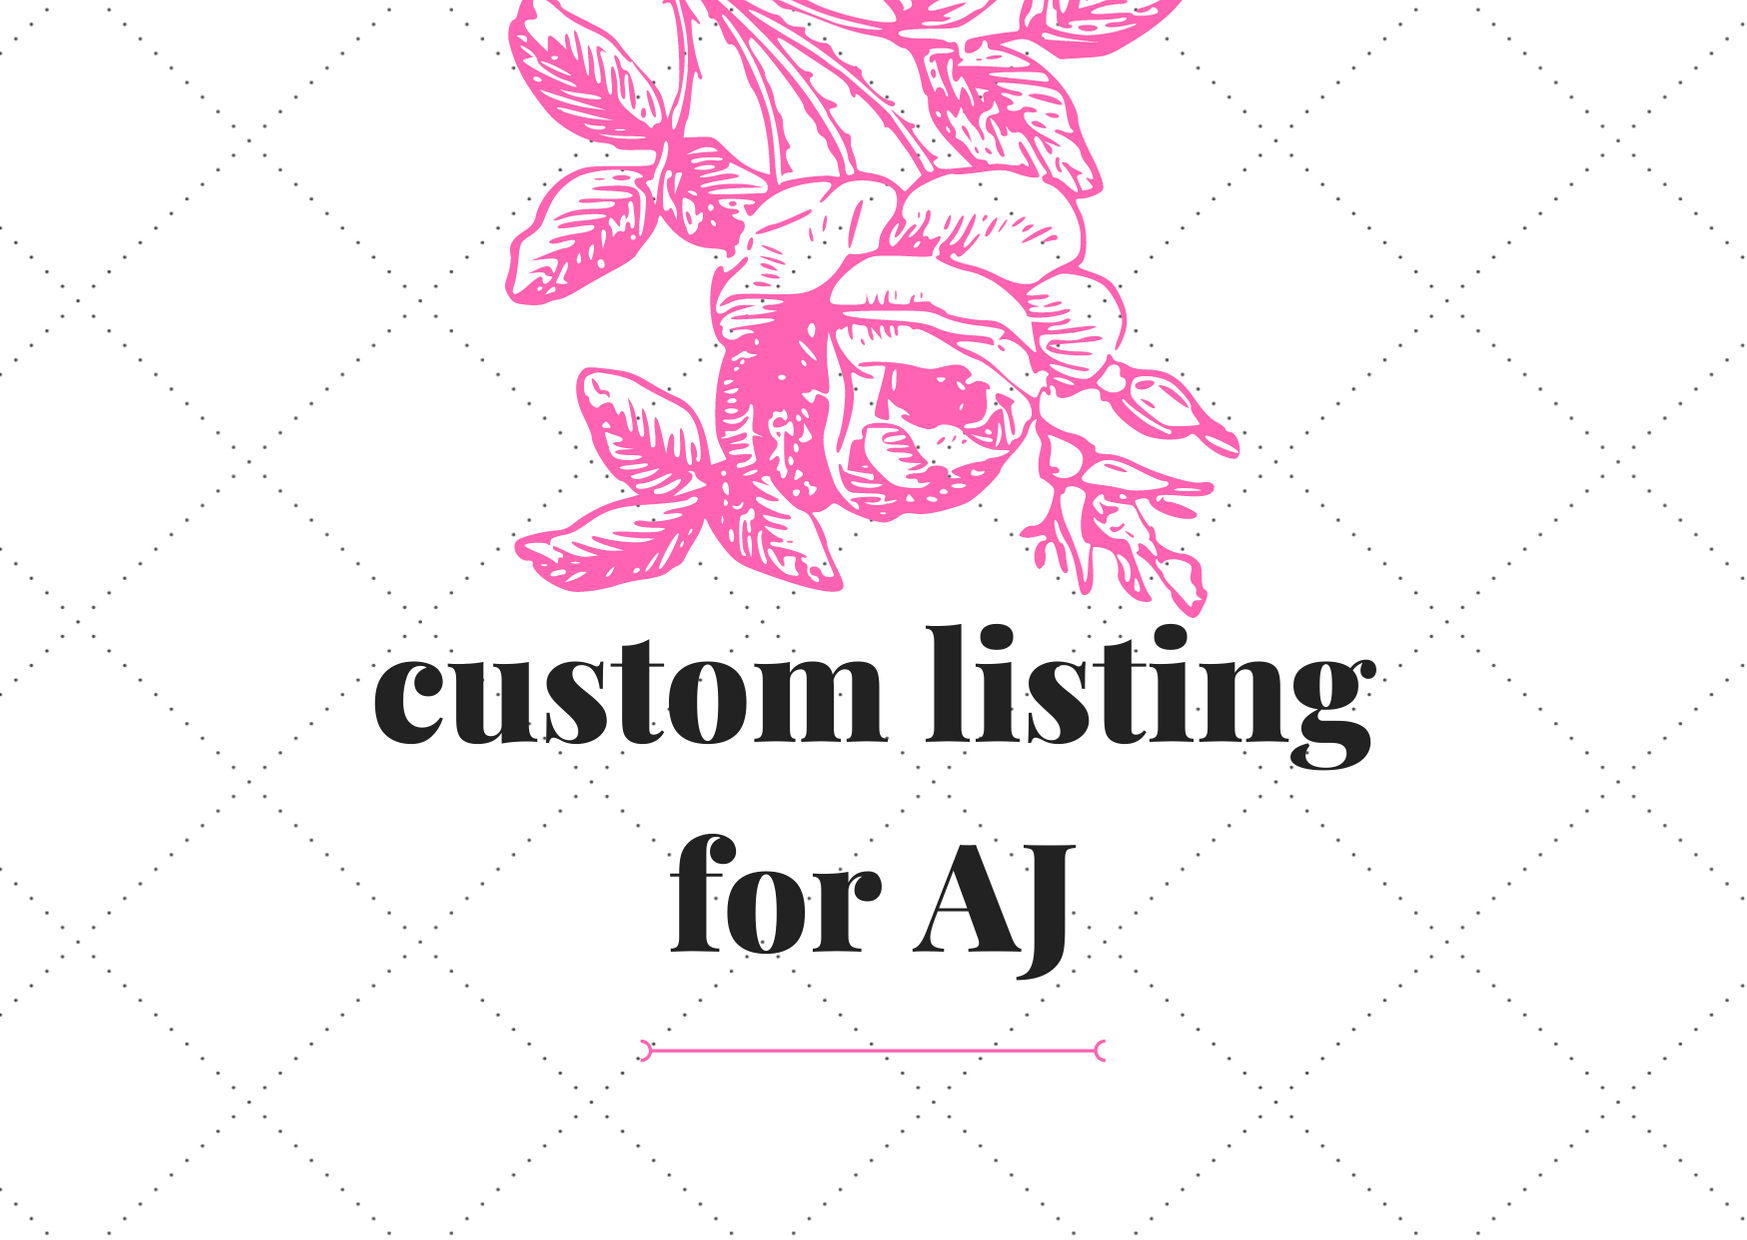 Reserved listing for AJ